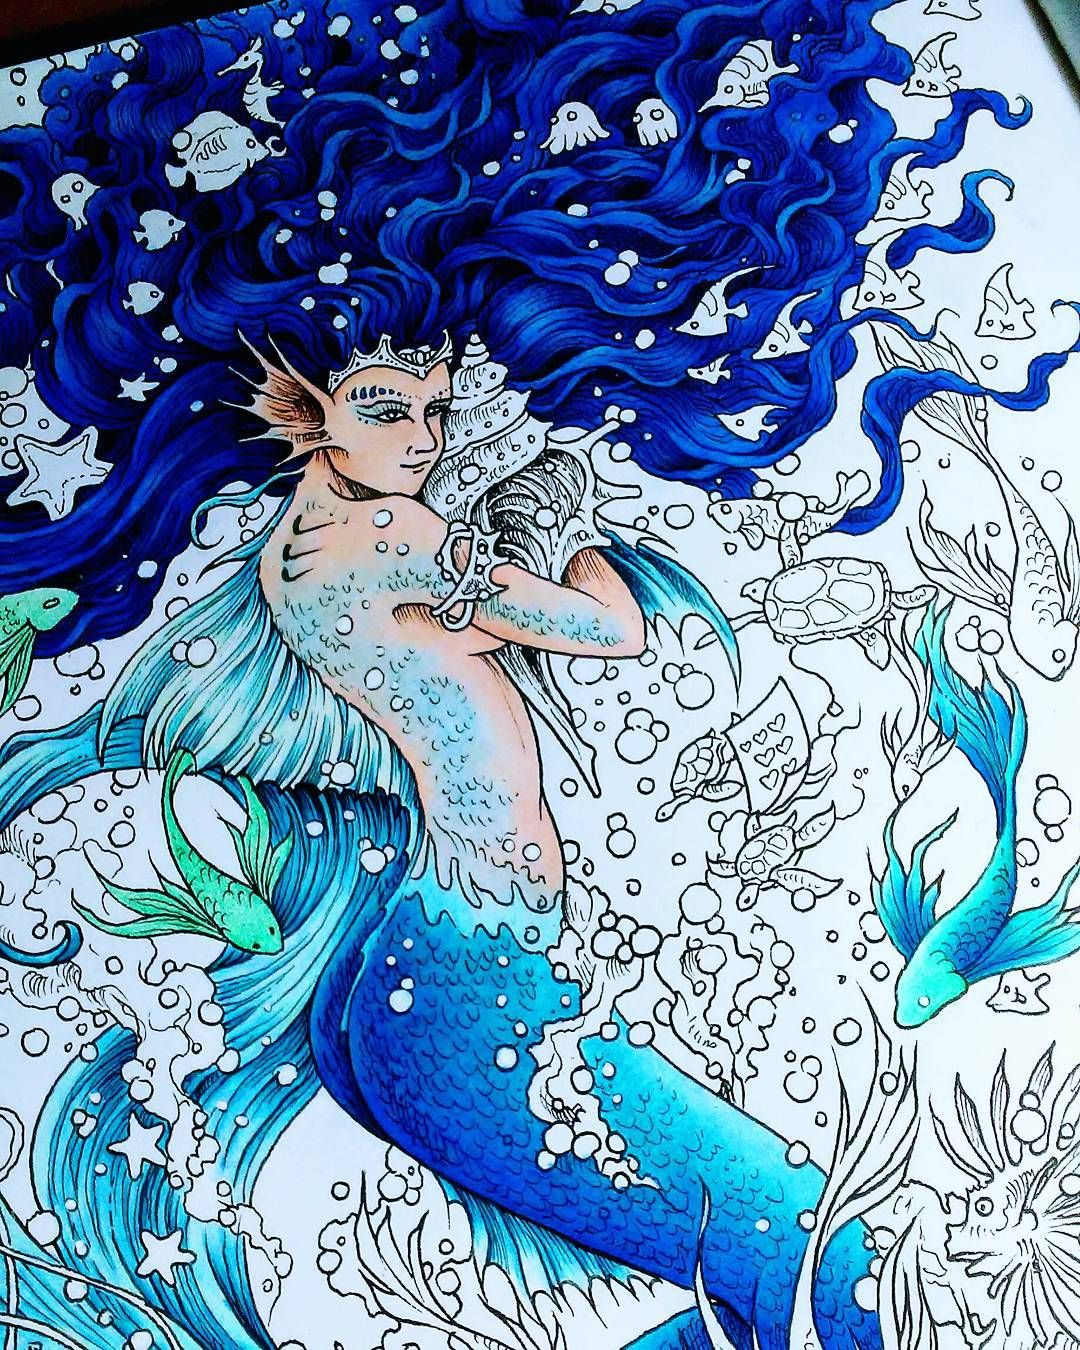 Mermaids mythomorphia coloring books colouring techniques